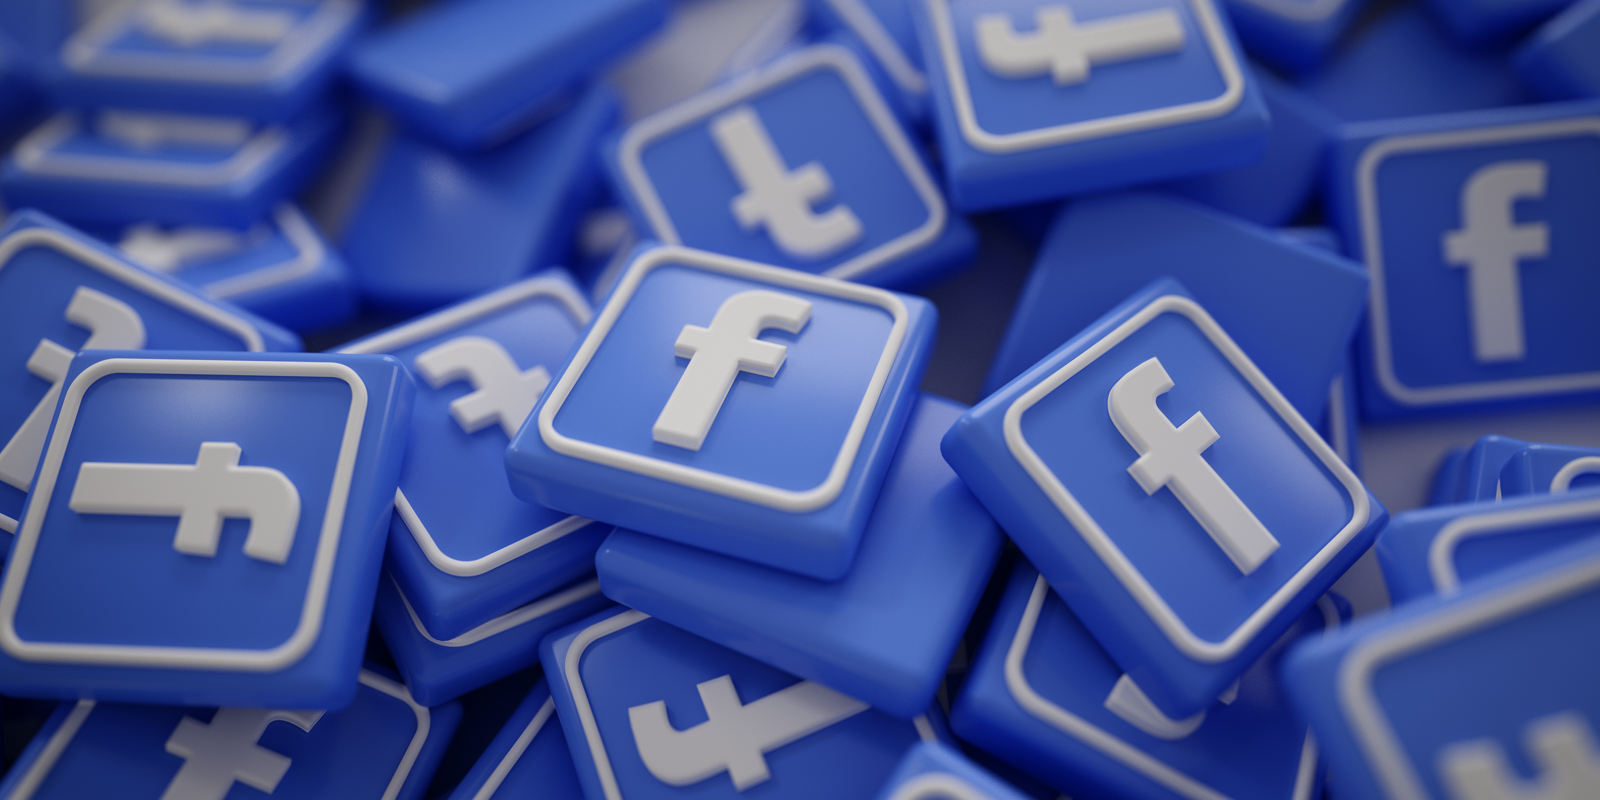 You spend 8 hours per month on Facebook